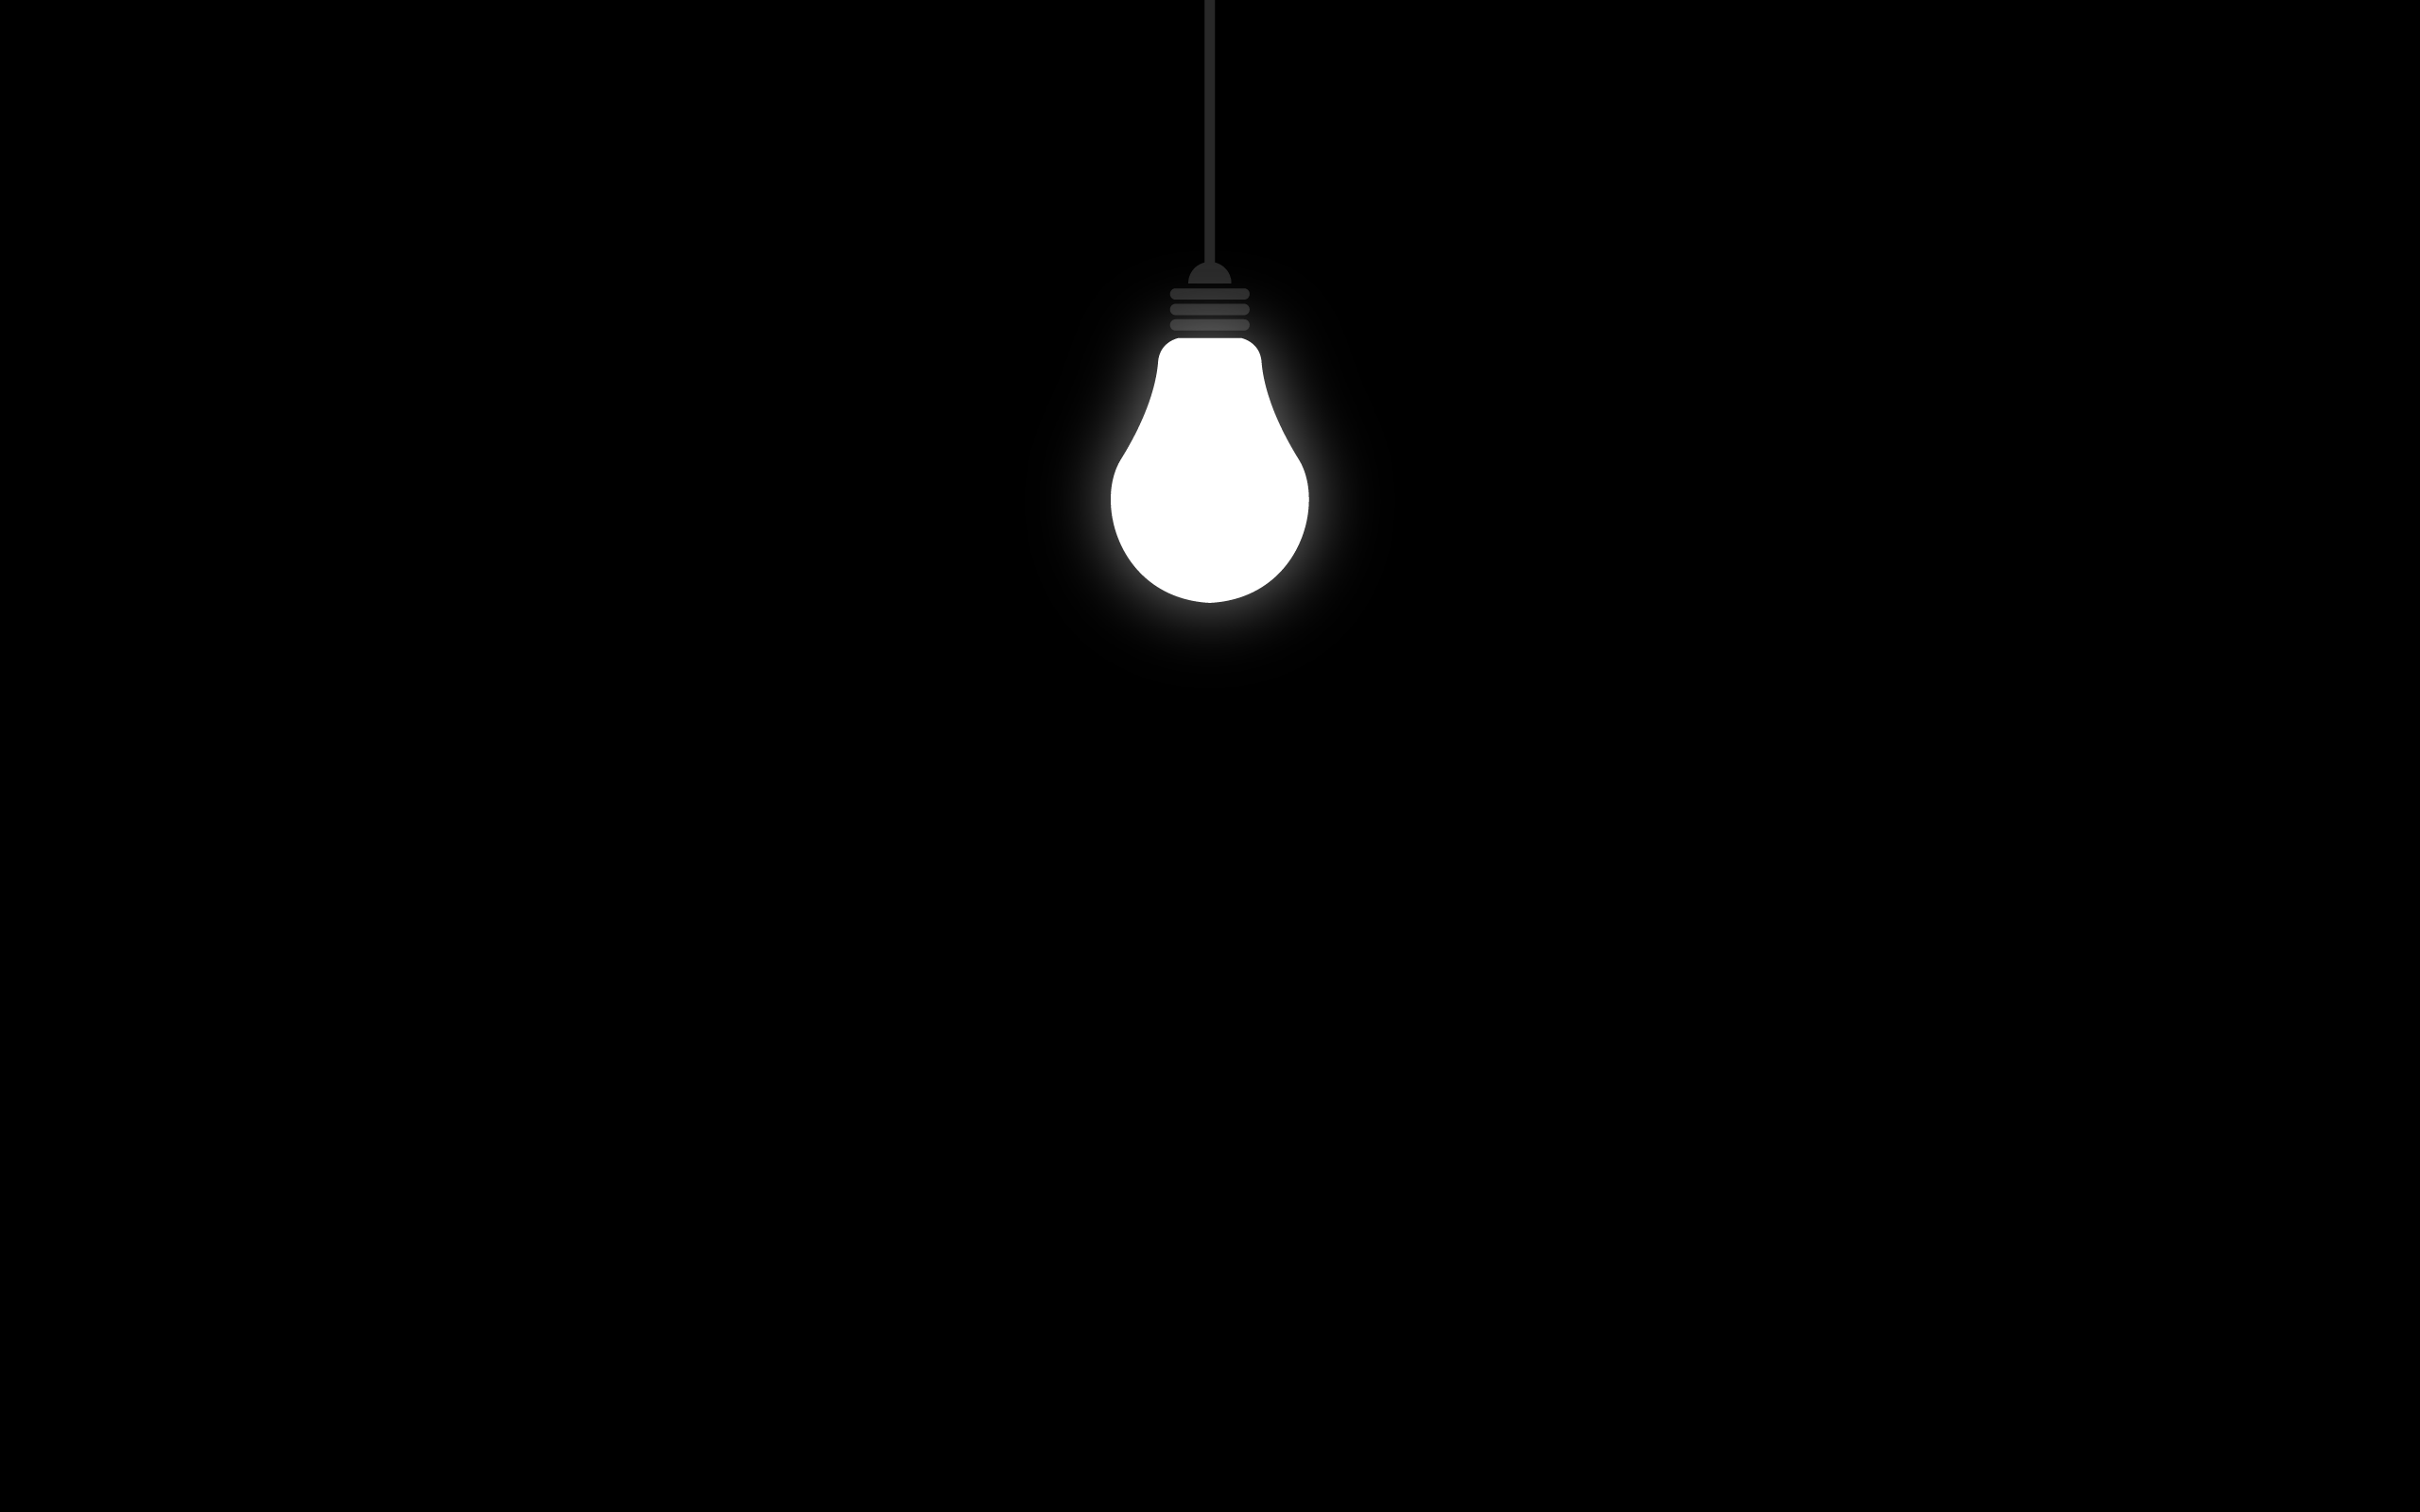 lonely light bulb